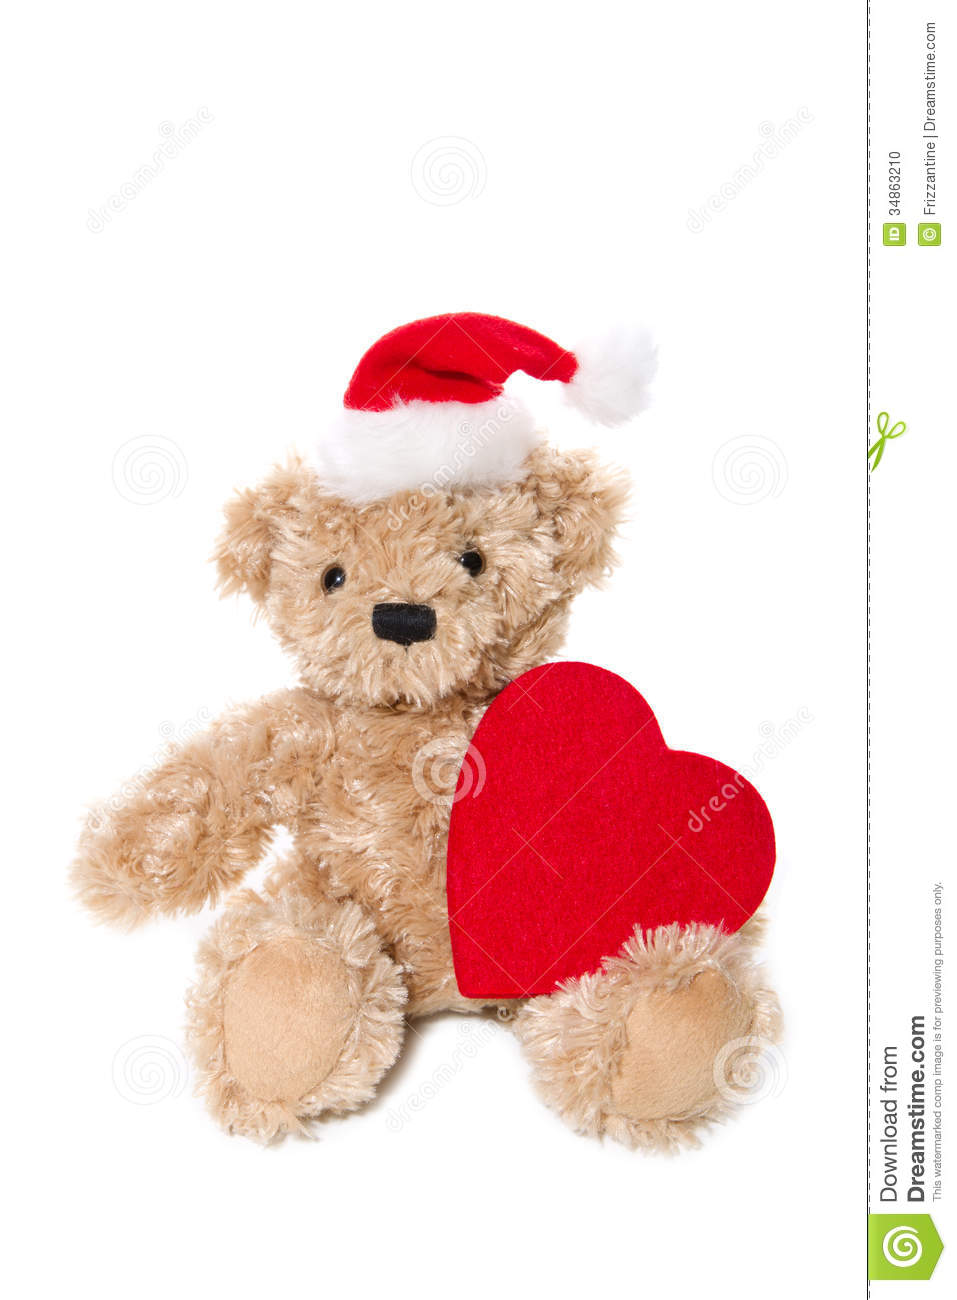 Ours de nounours d 39 isolement de no l avec un coeur rouge photo stock image 34863210 - Nounours noel ...